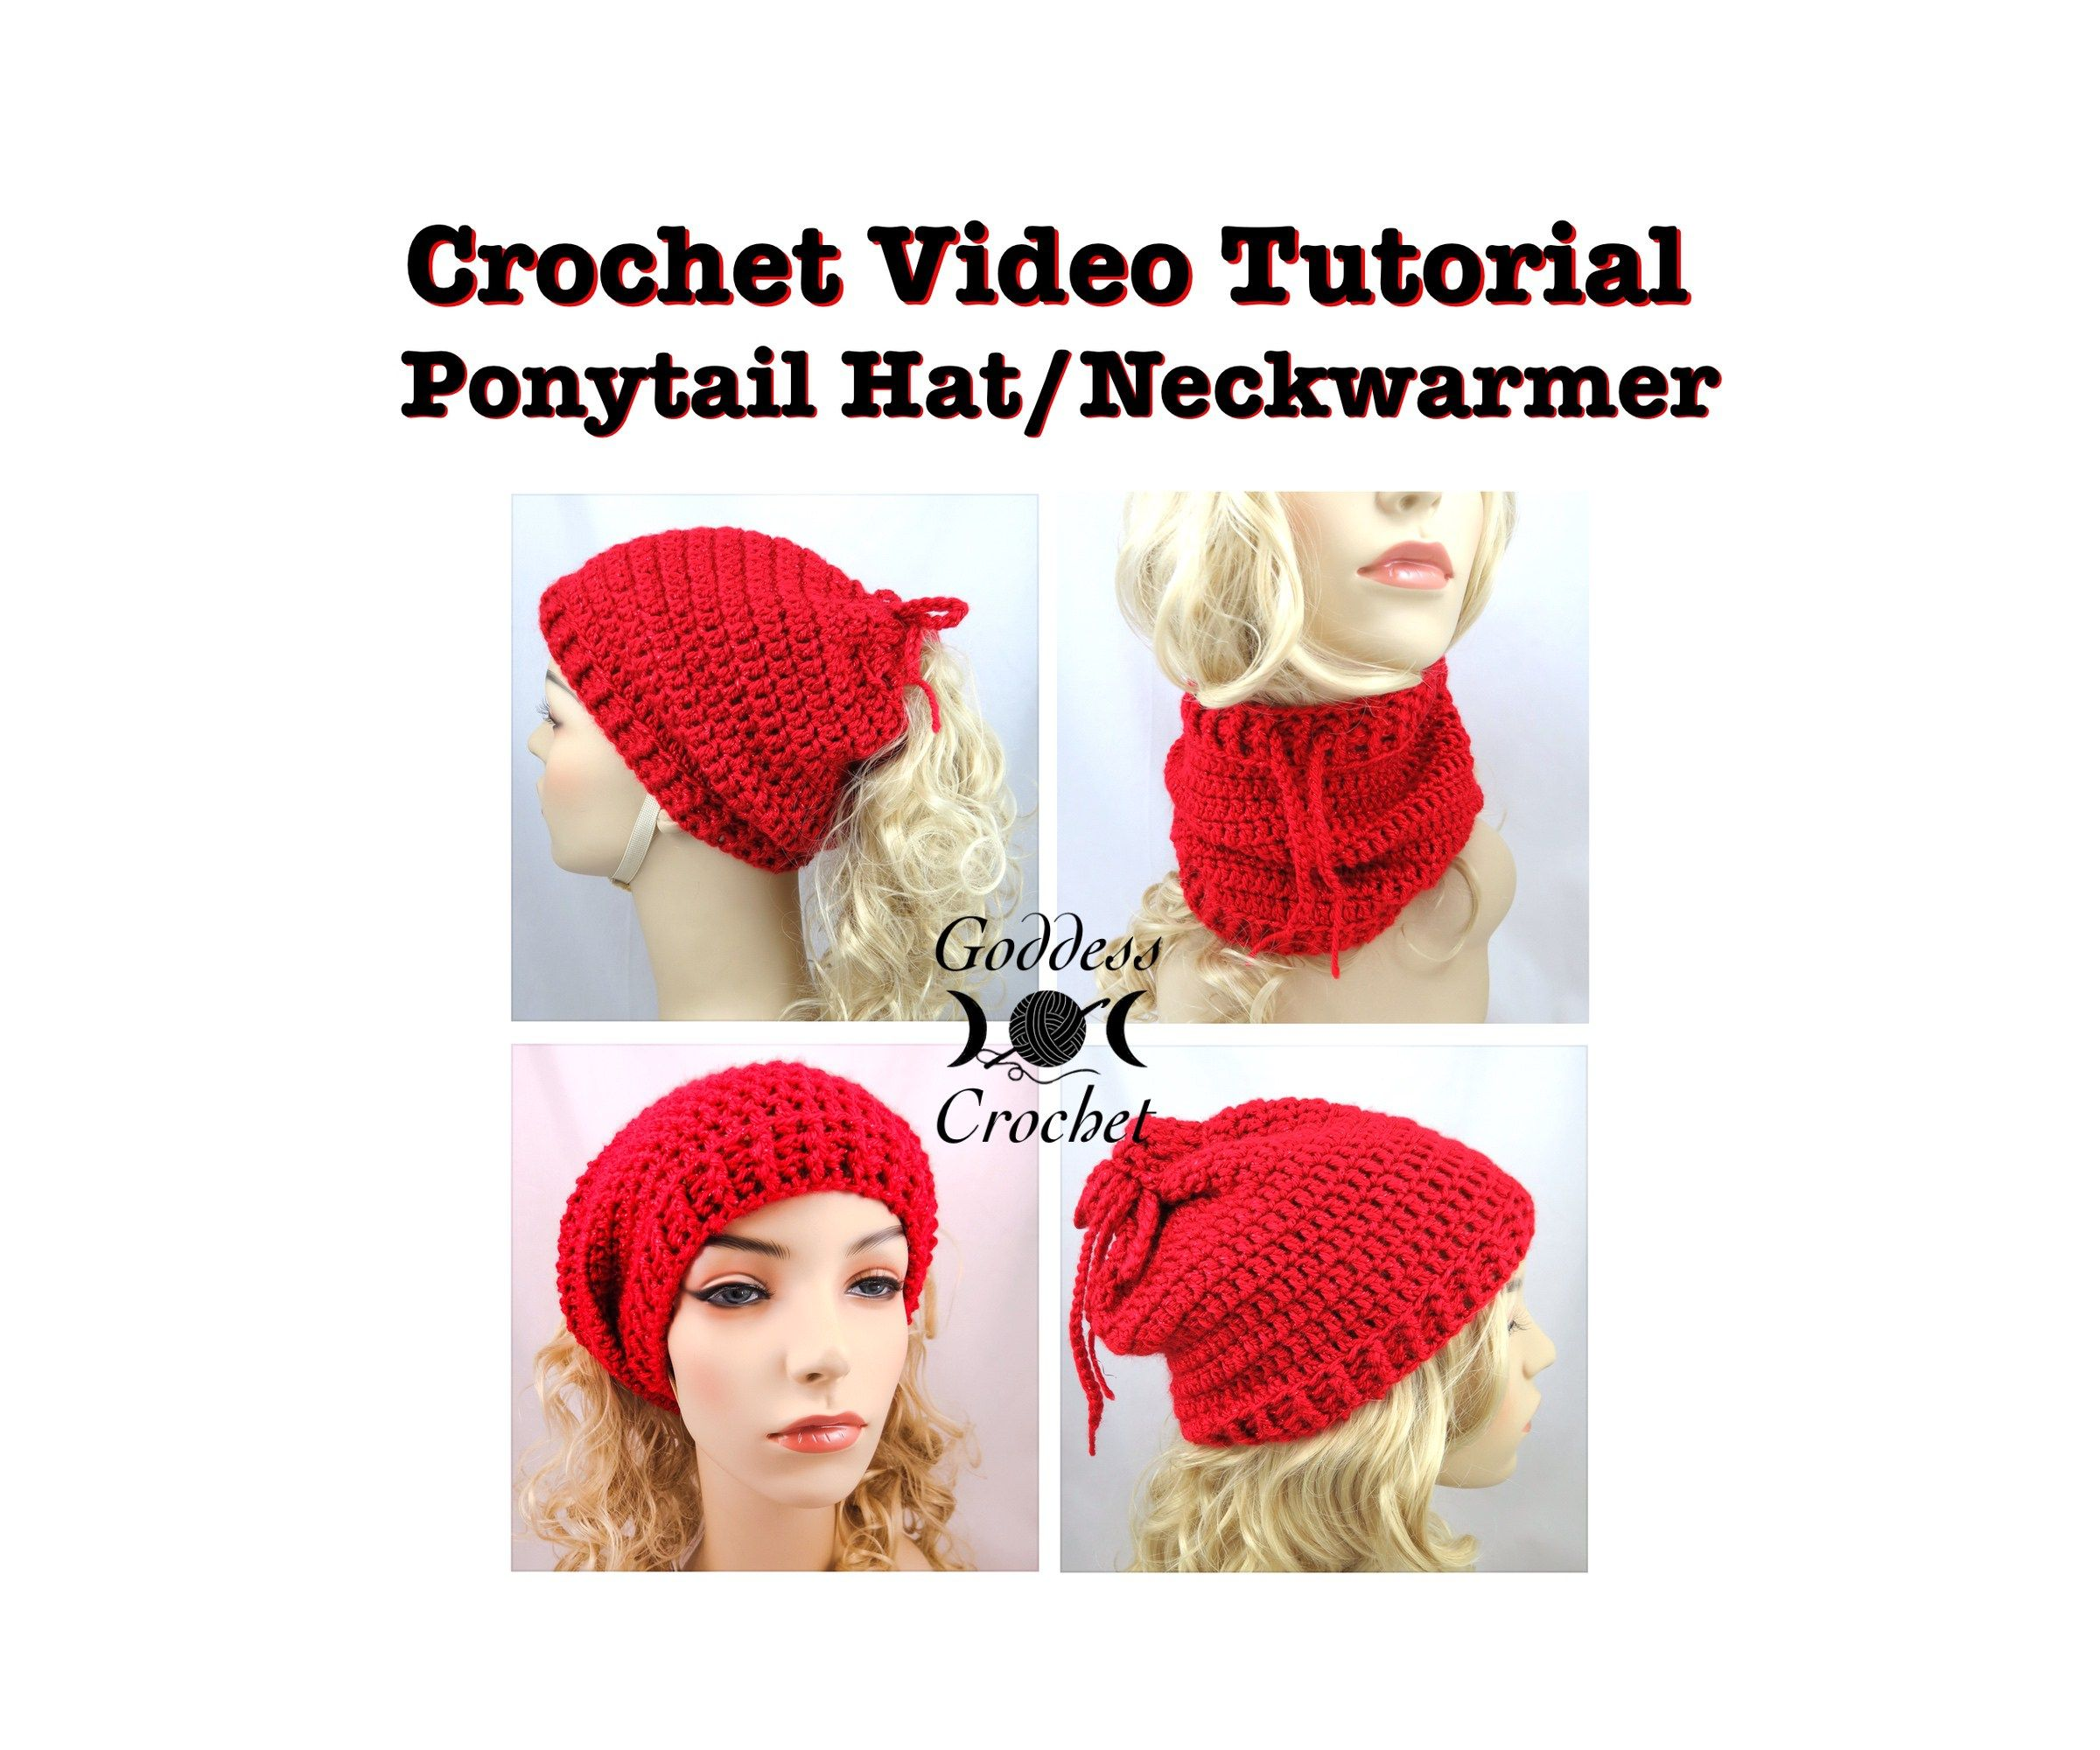 Crochet video tutorial ponytail hat neckwarmer crochet pattern crochet video tutorial ponytail hat neckwarmer crochet pattern goddess crochet baditri Image collections